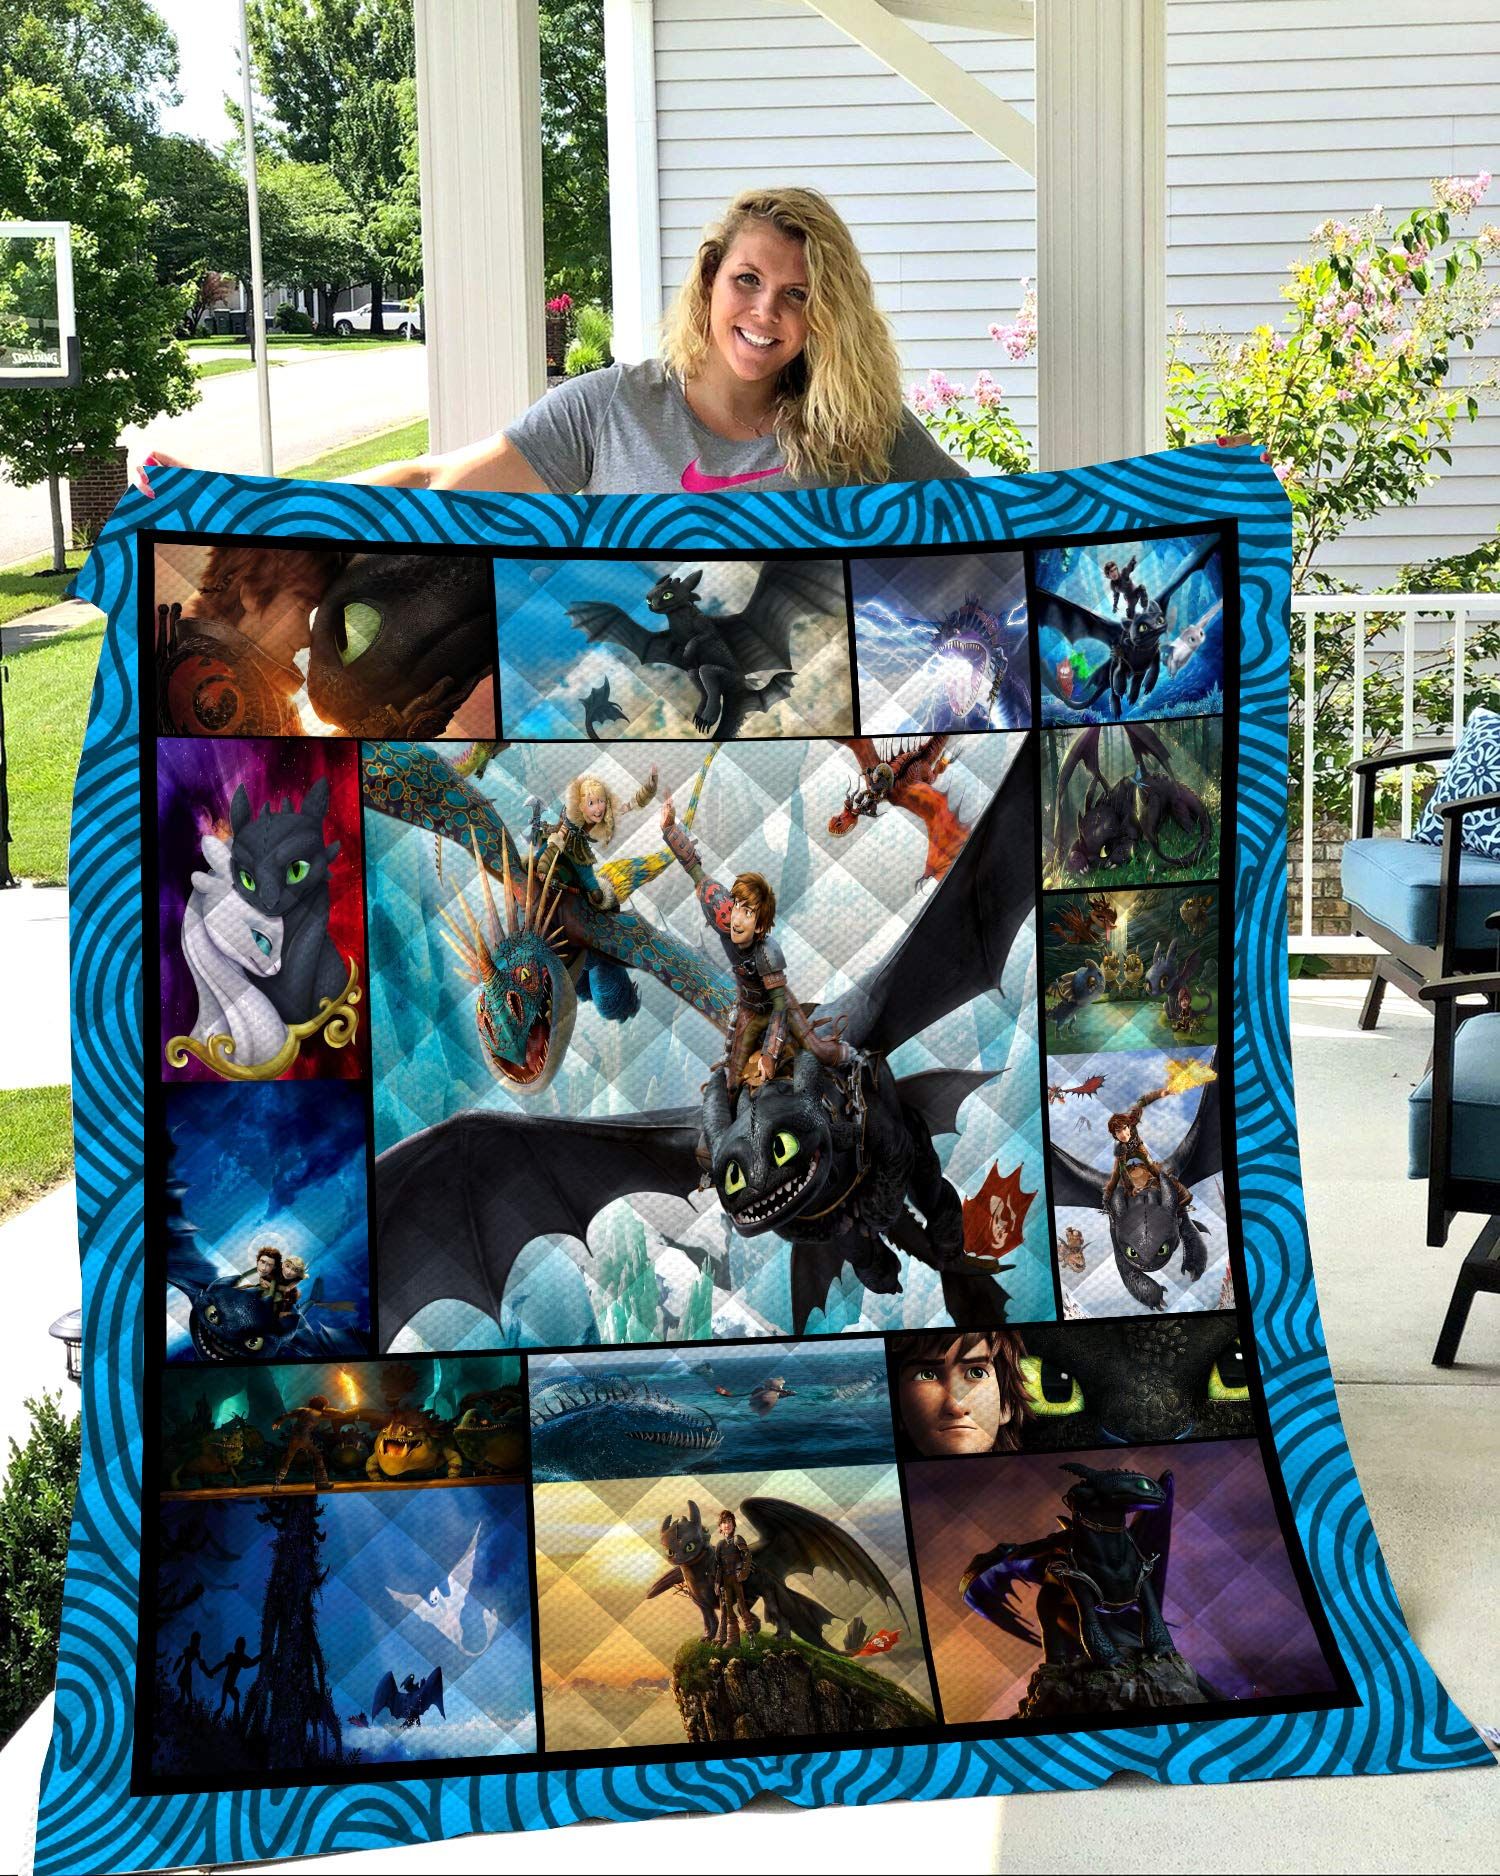 Summer 3D How to Train Your Dragon Quilt Blanket for Kids Adult Bedding Throw Warm Thin Blanket Cotton Quilt Queen King Size (Style 2,150cm200cm) by OWHO